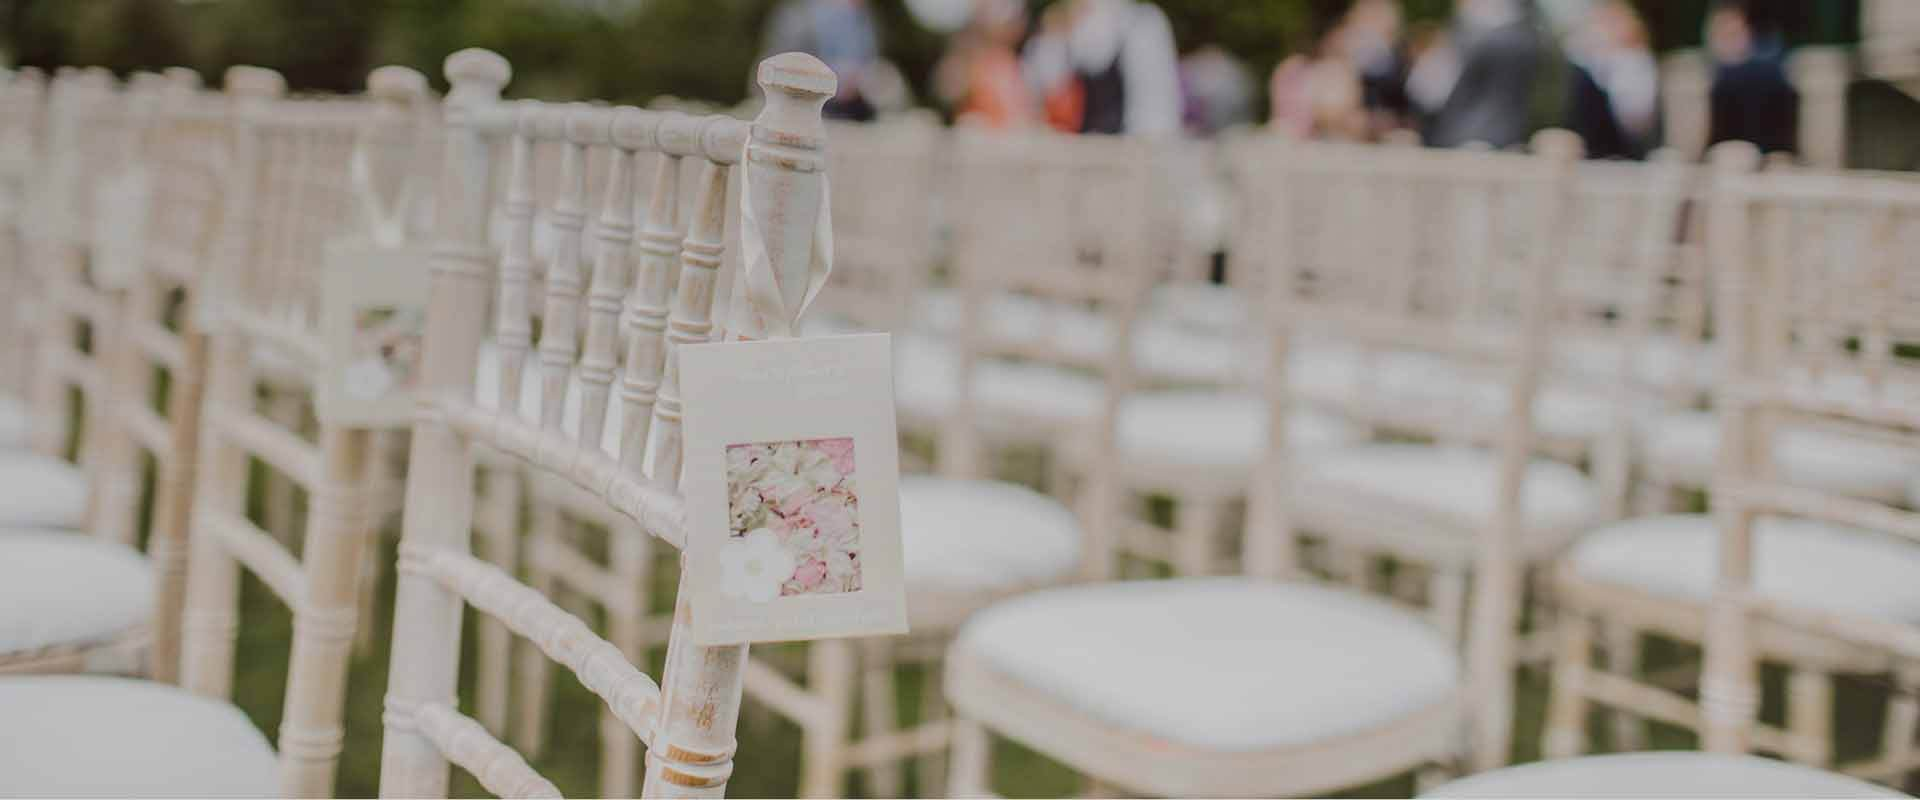 cheap chiavari chair rental miami frost king lawn webbing allure party rentals rent chairs tables tents linens in south fl unforgettable events